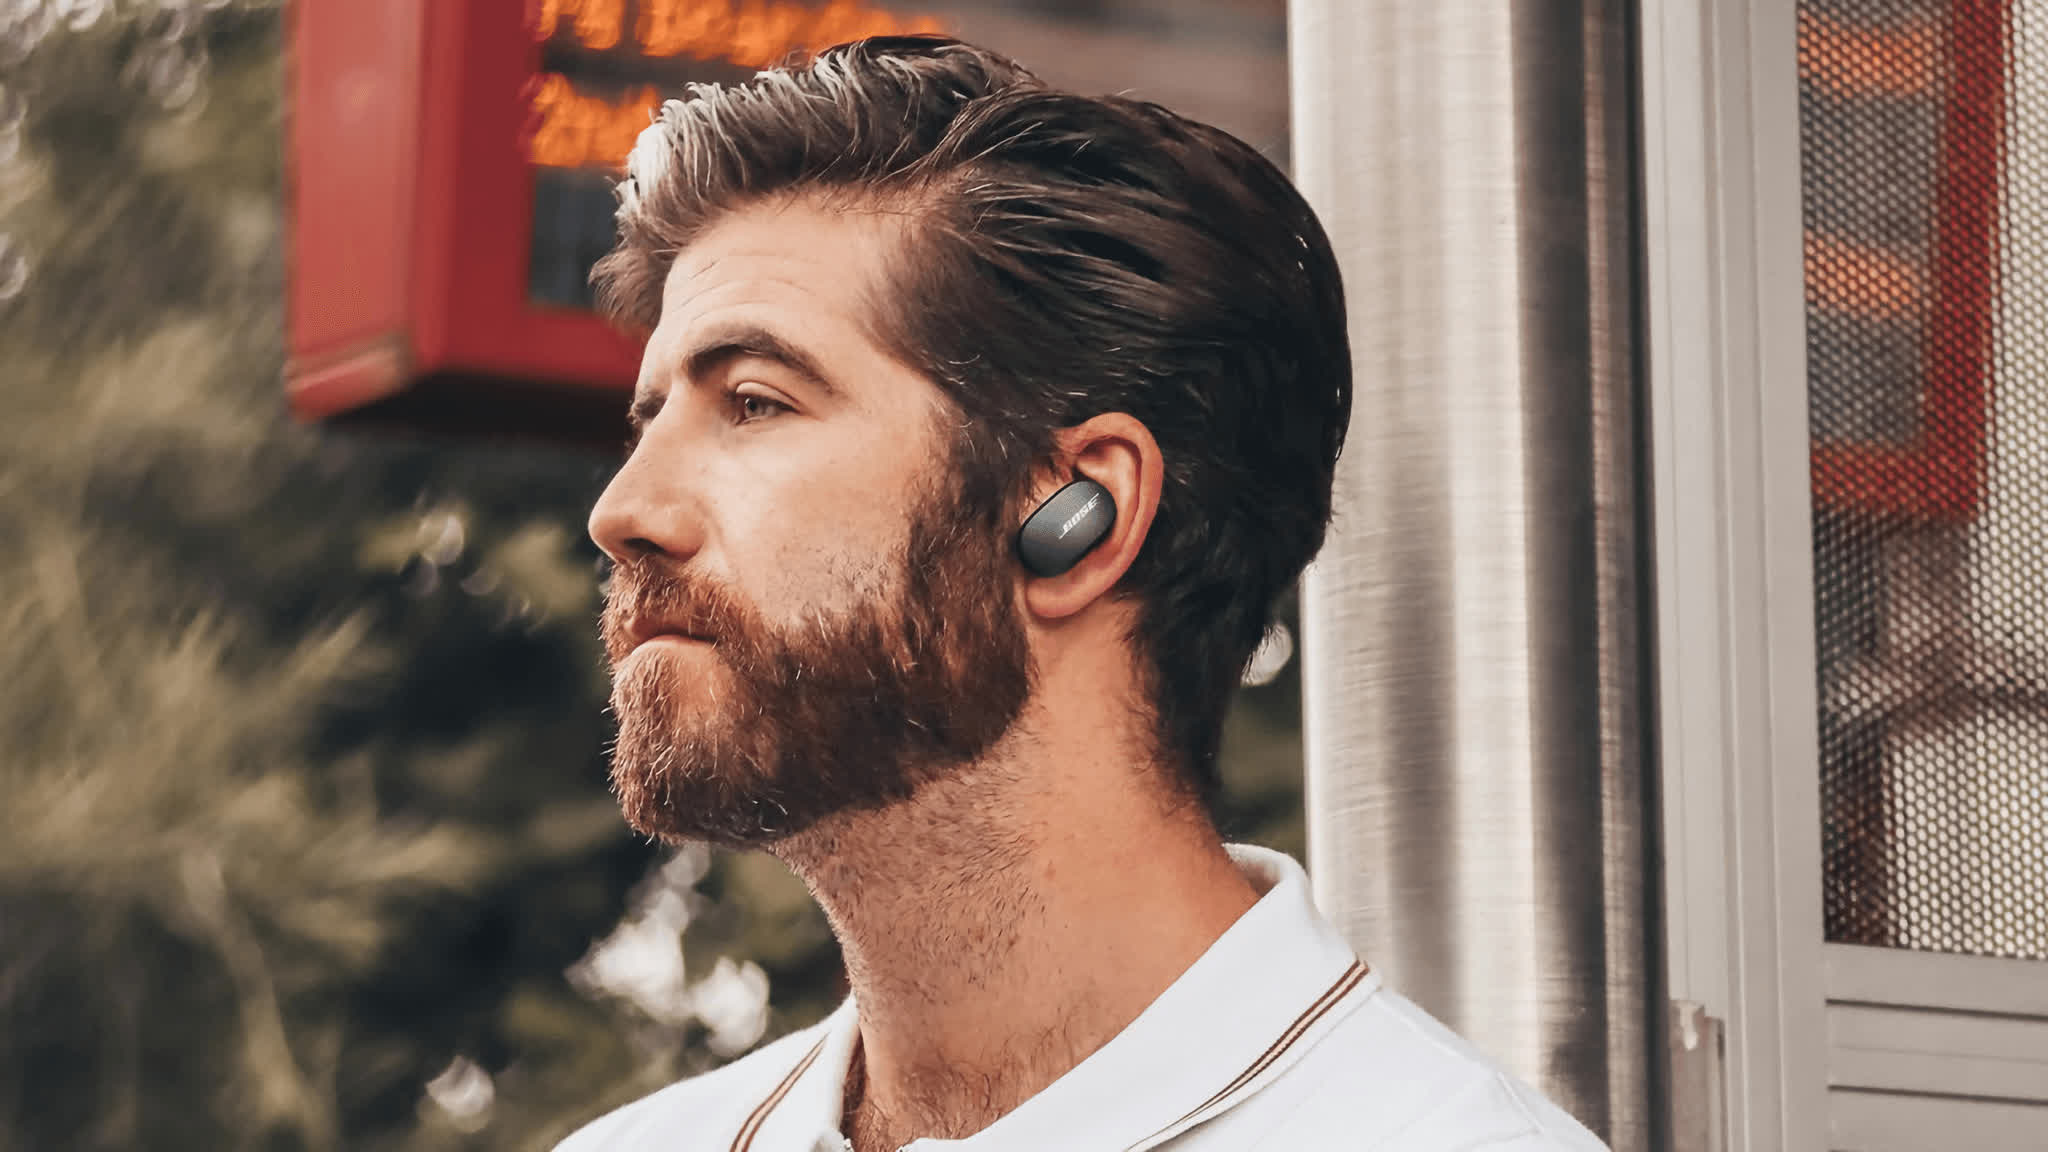 Bose's new QuietComfort Earbuds promise 11 levels of noise cancellation